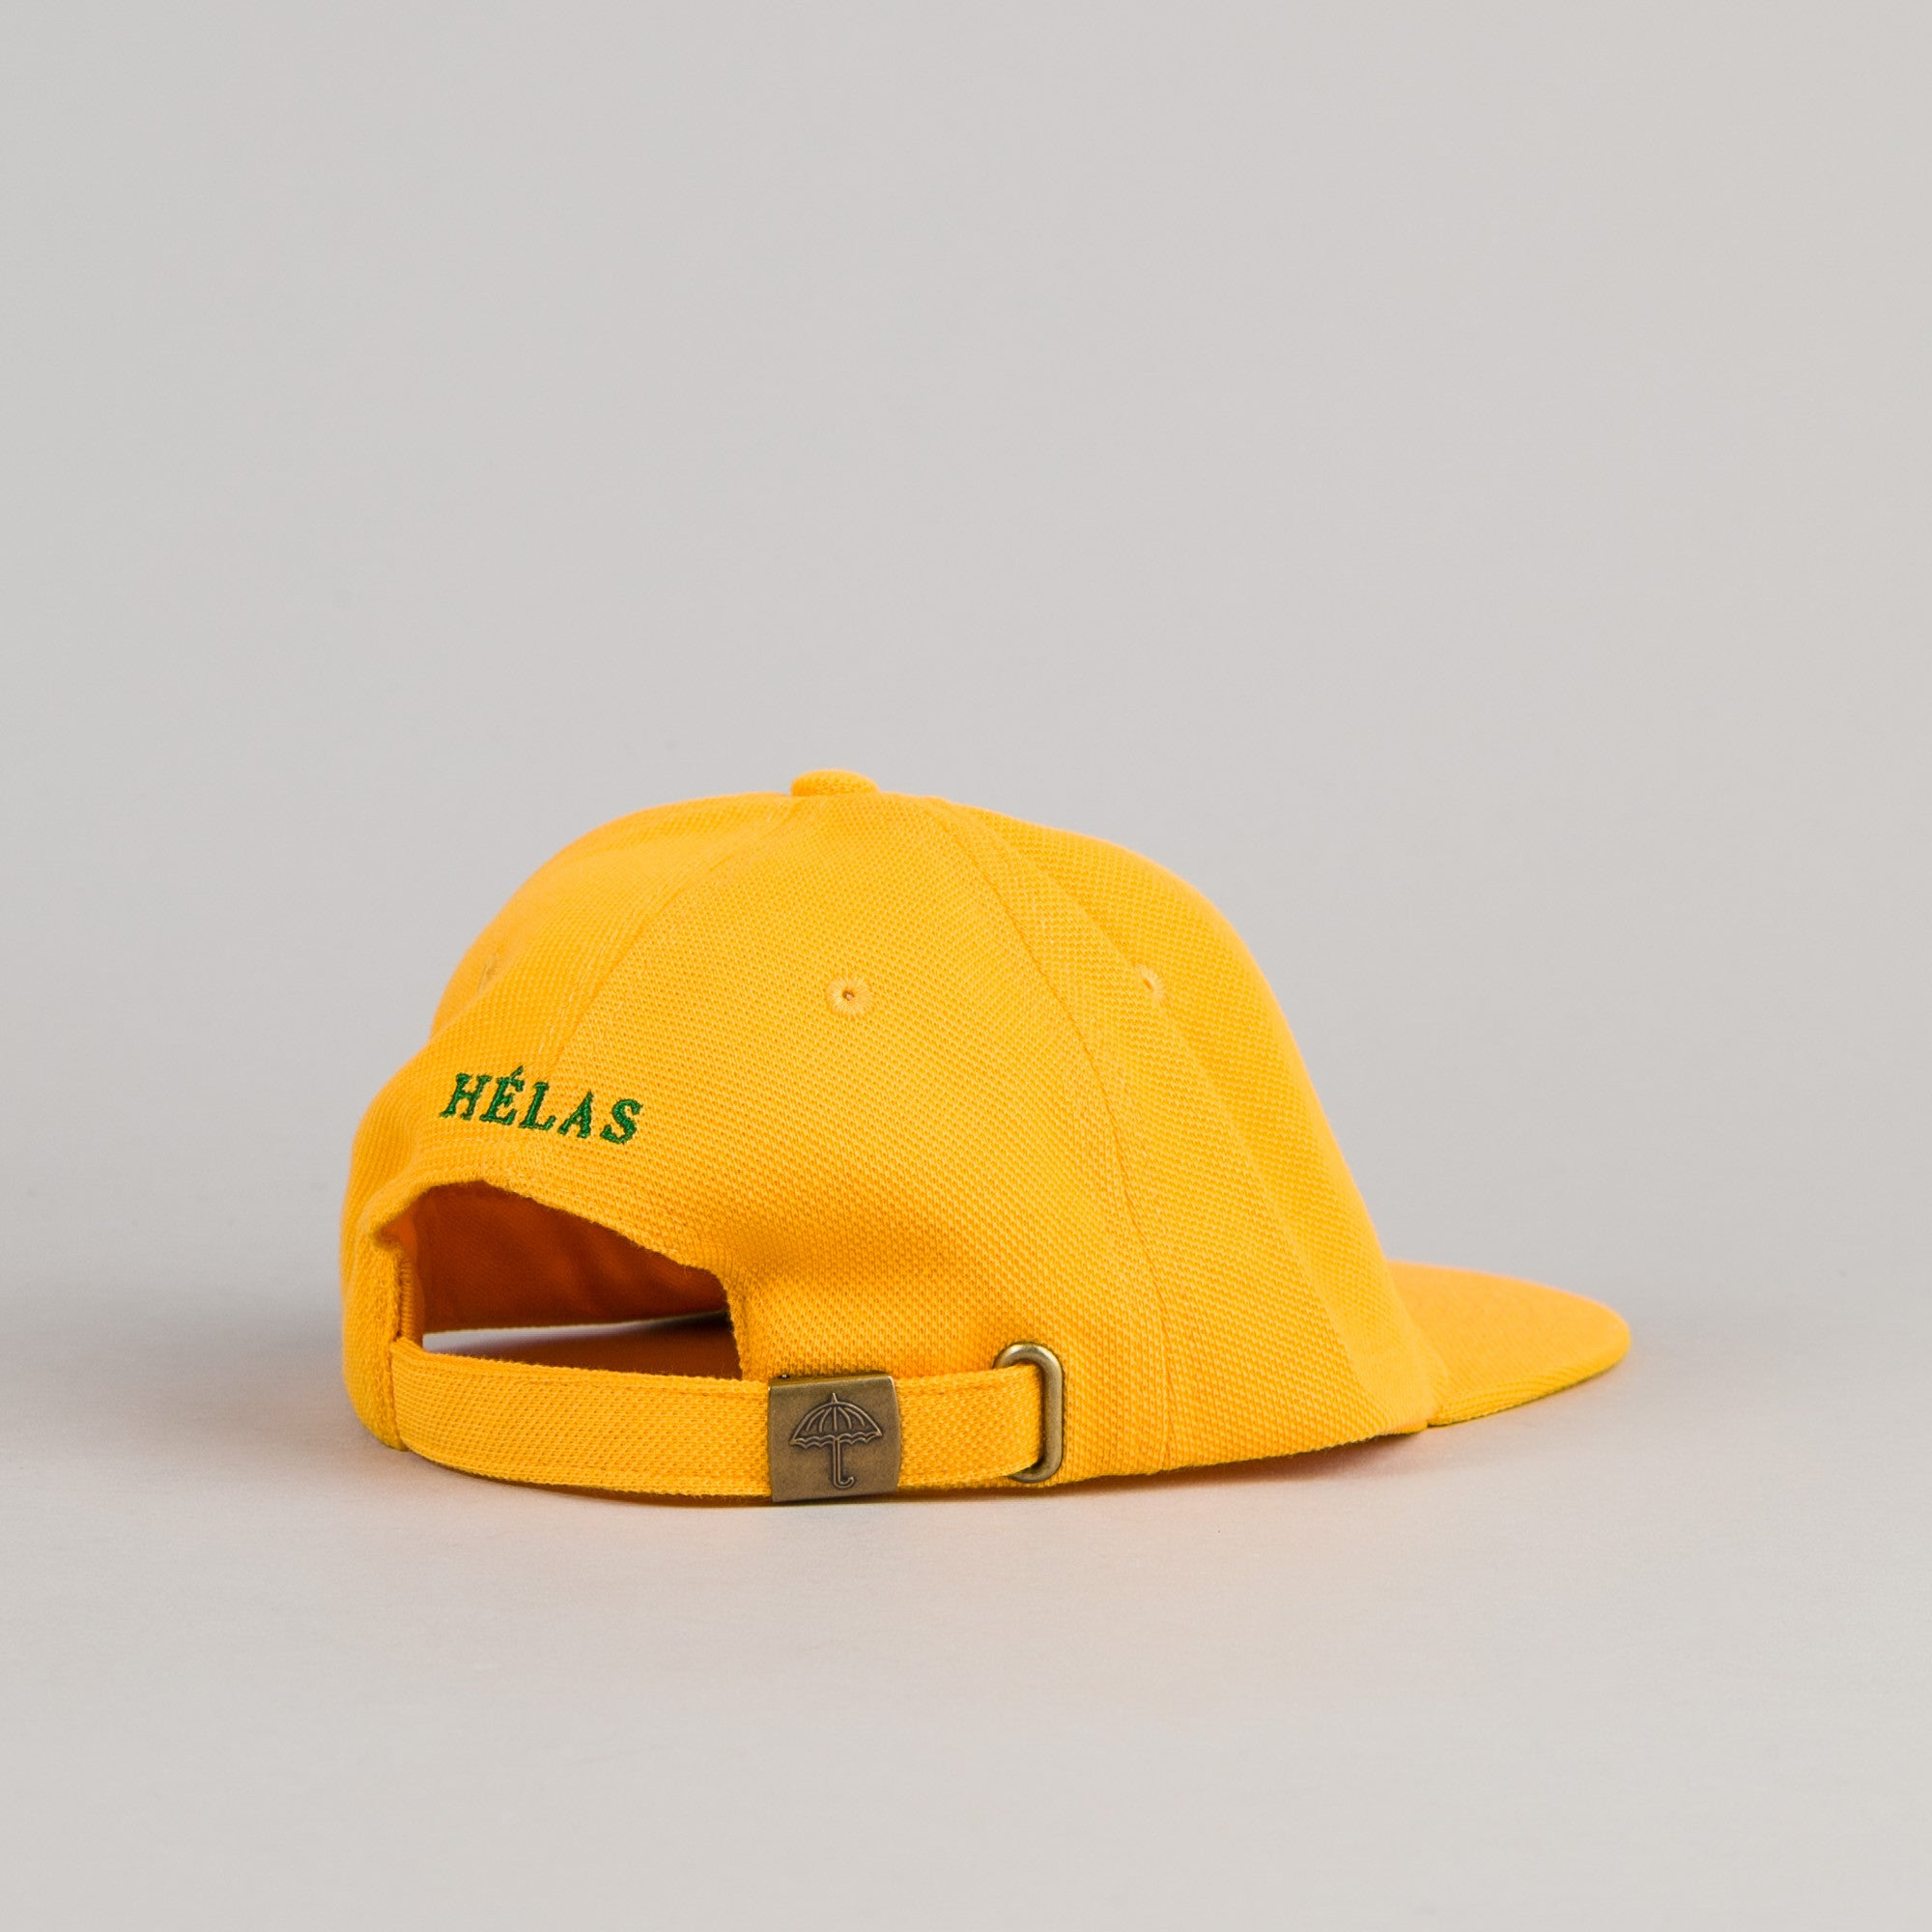 Helas Baller 6 Panel Cap - Yellow